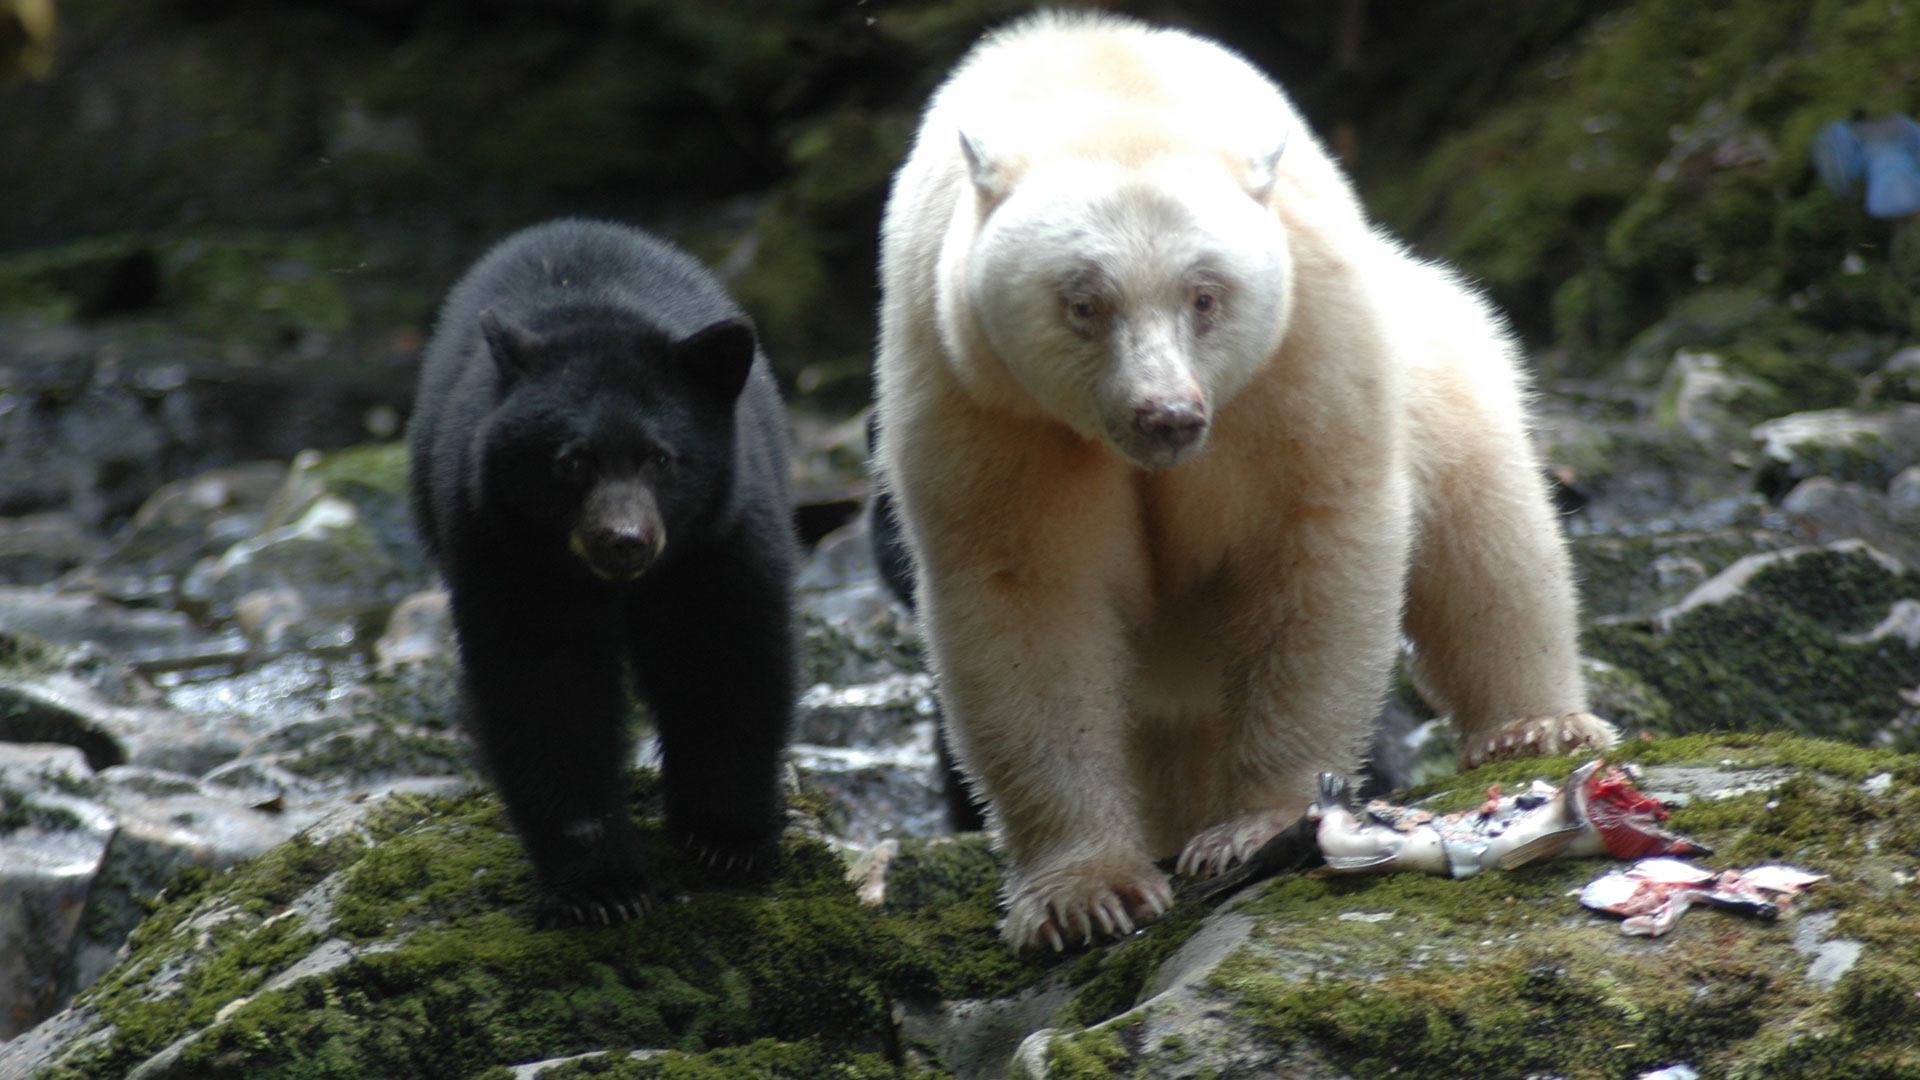 11 amazing facts about Canada's bear species